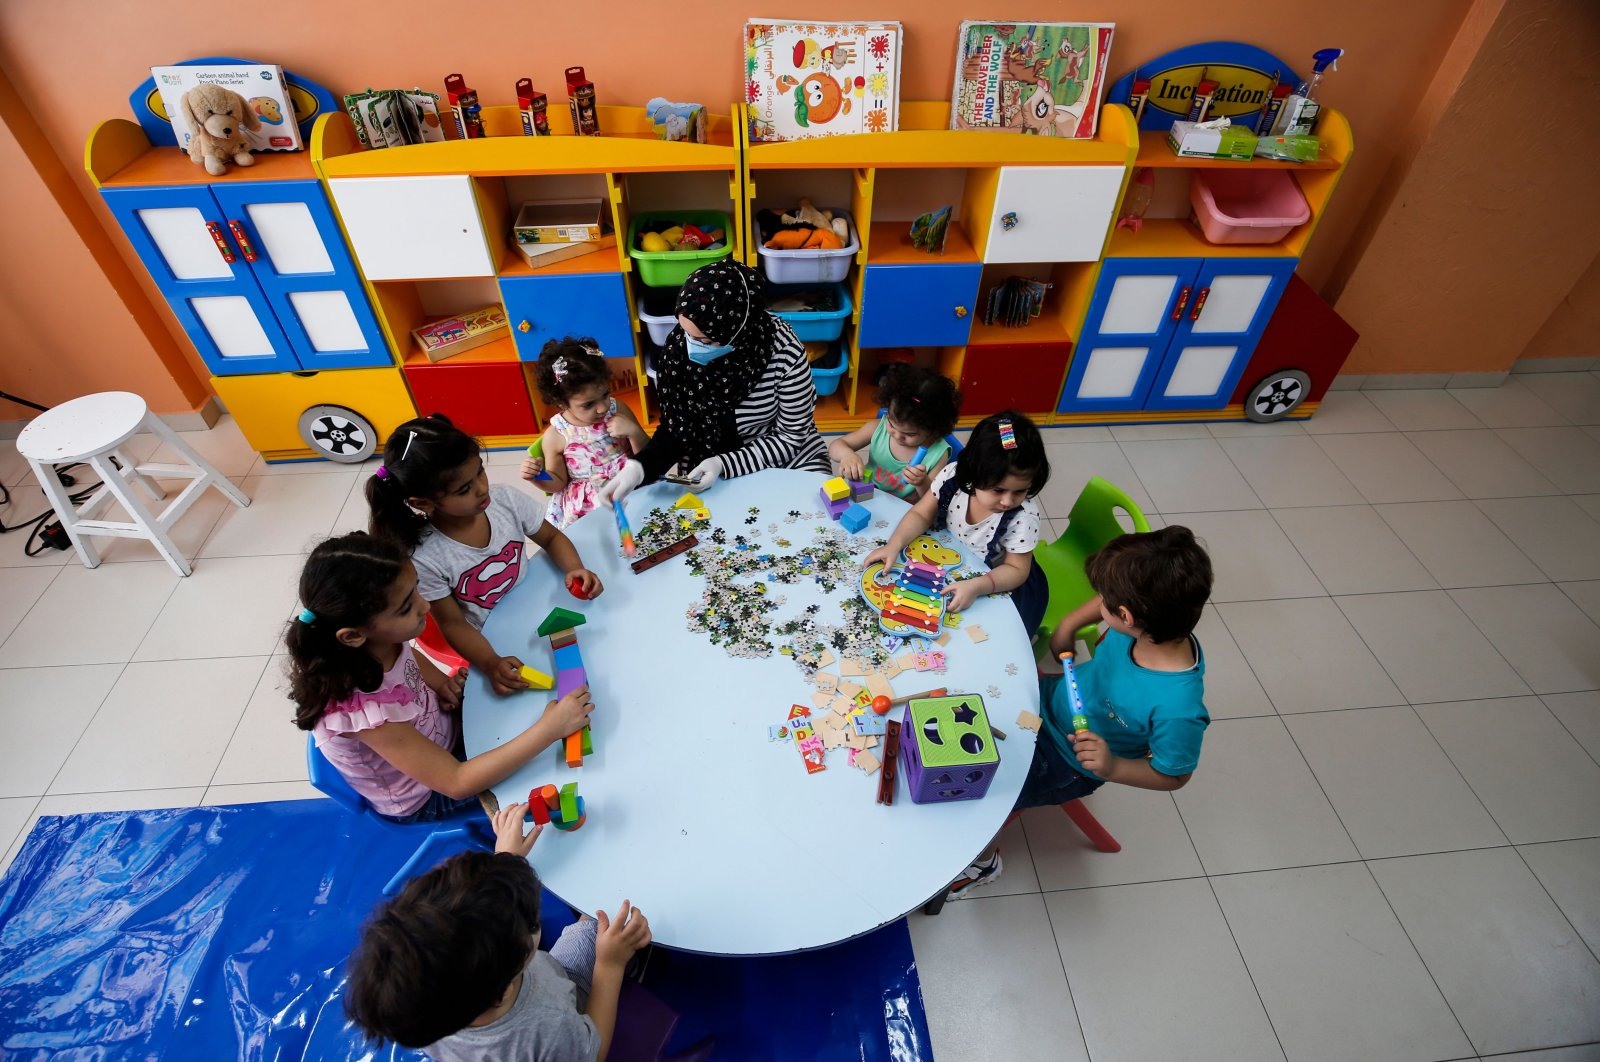 Palestinian children are pictured in a preschool in Gaza City following the easing of restrictions to curb the spread of the coronavirus, Palestine, June 4, 2020. (AFP Photo)